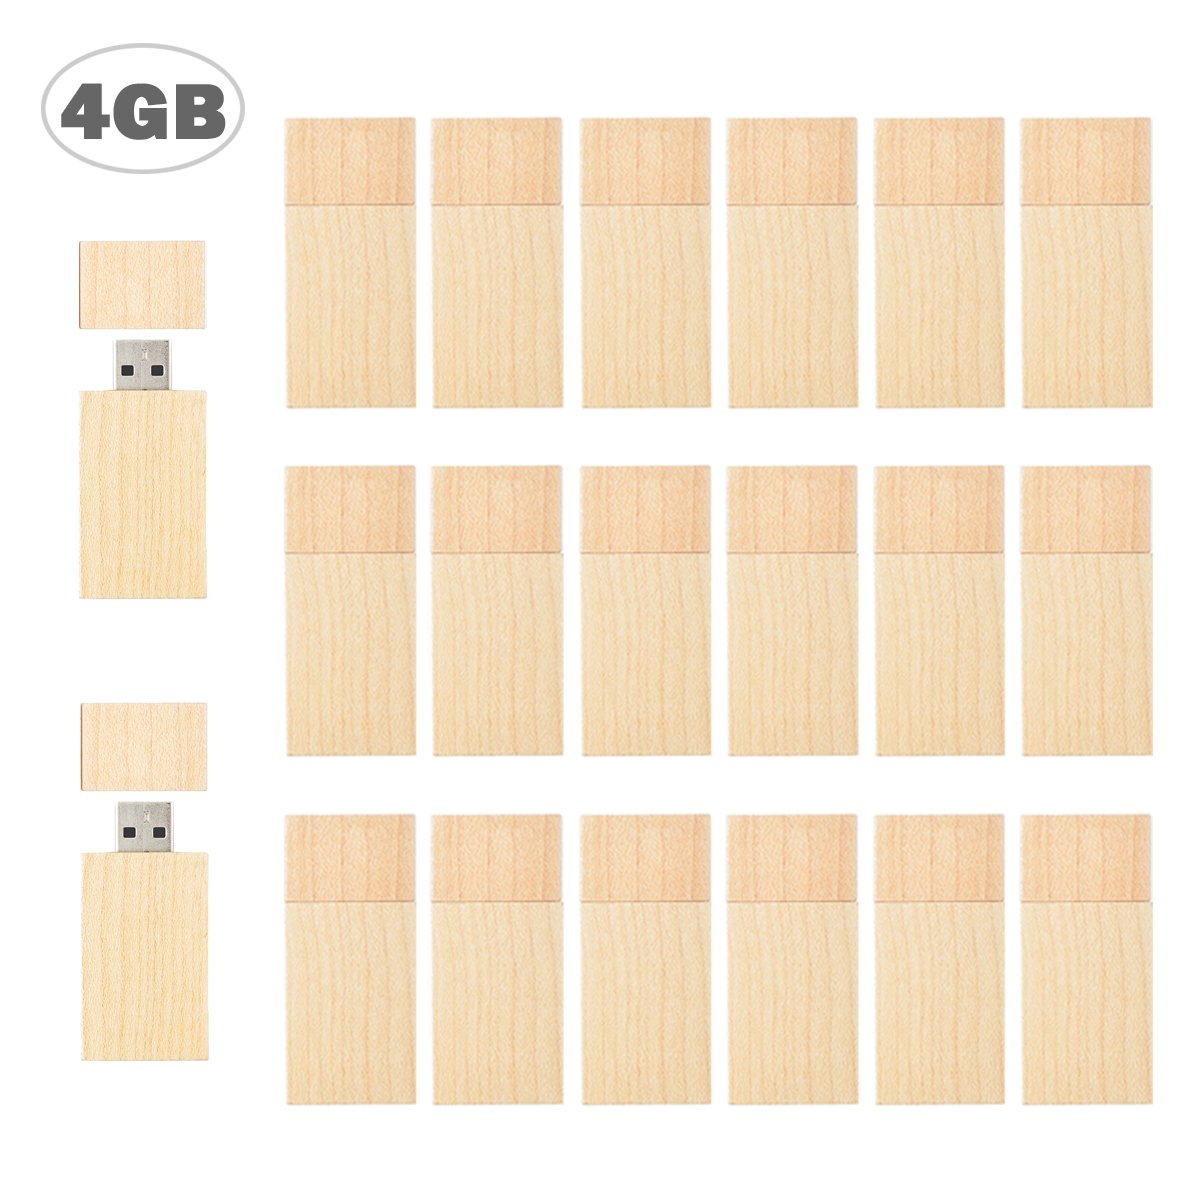 Flash Drive 4GB, USB 2.0 Wooden Flash Drive TEWENE Swivel Thumb Drives Zip Drive Memory Drive Jump Drives for Android Devices and Computers (4GB-20 Pack)